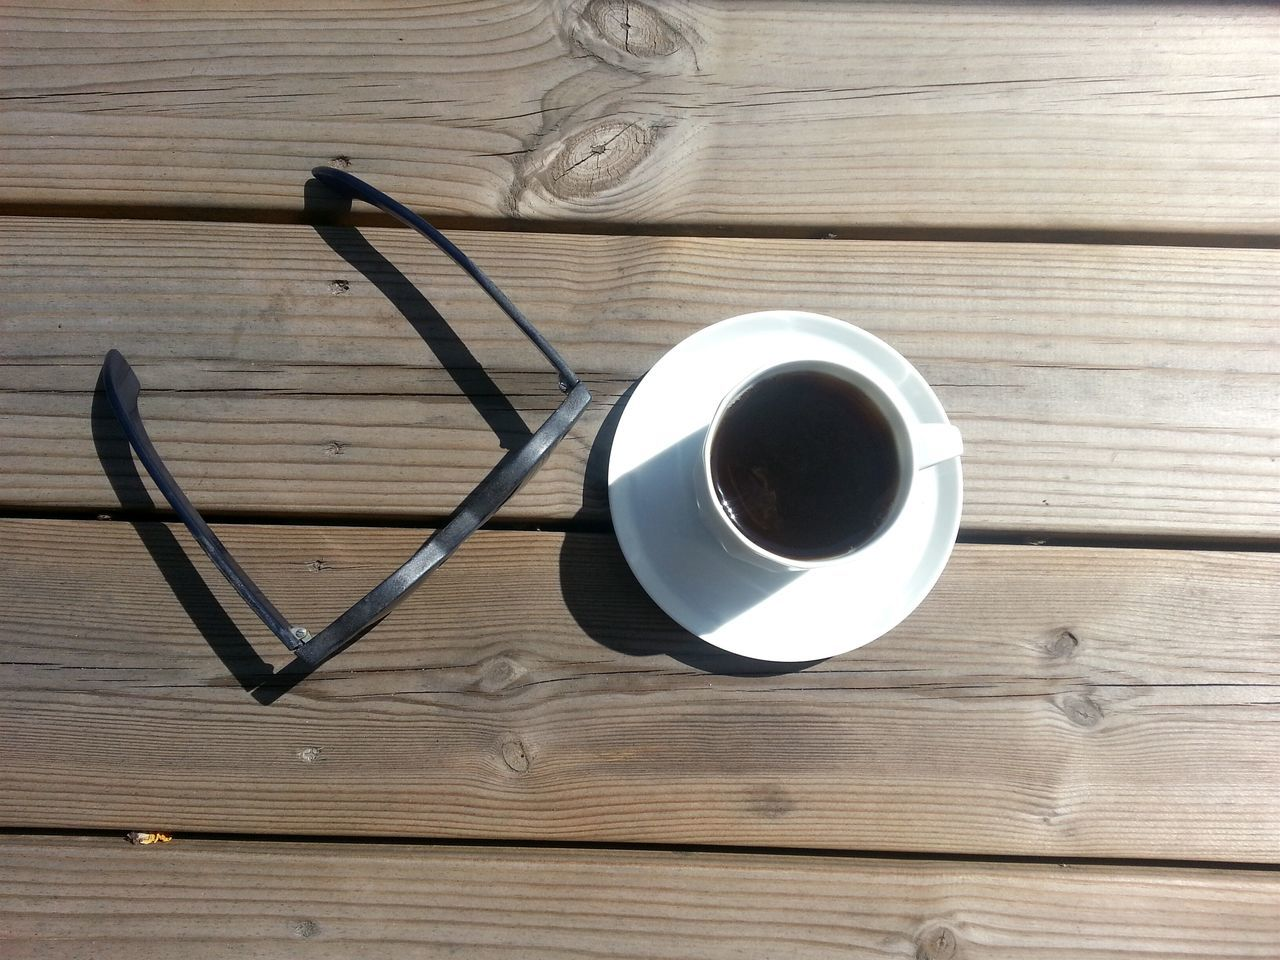 Summer Essentials Coffee Sunglasses Wooden Surface Sonnenbrille Kaffee Coffee At Home